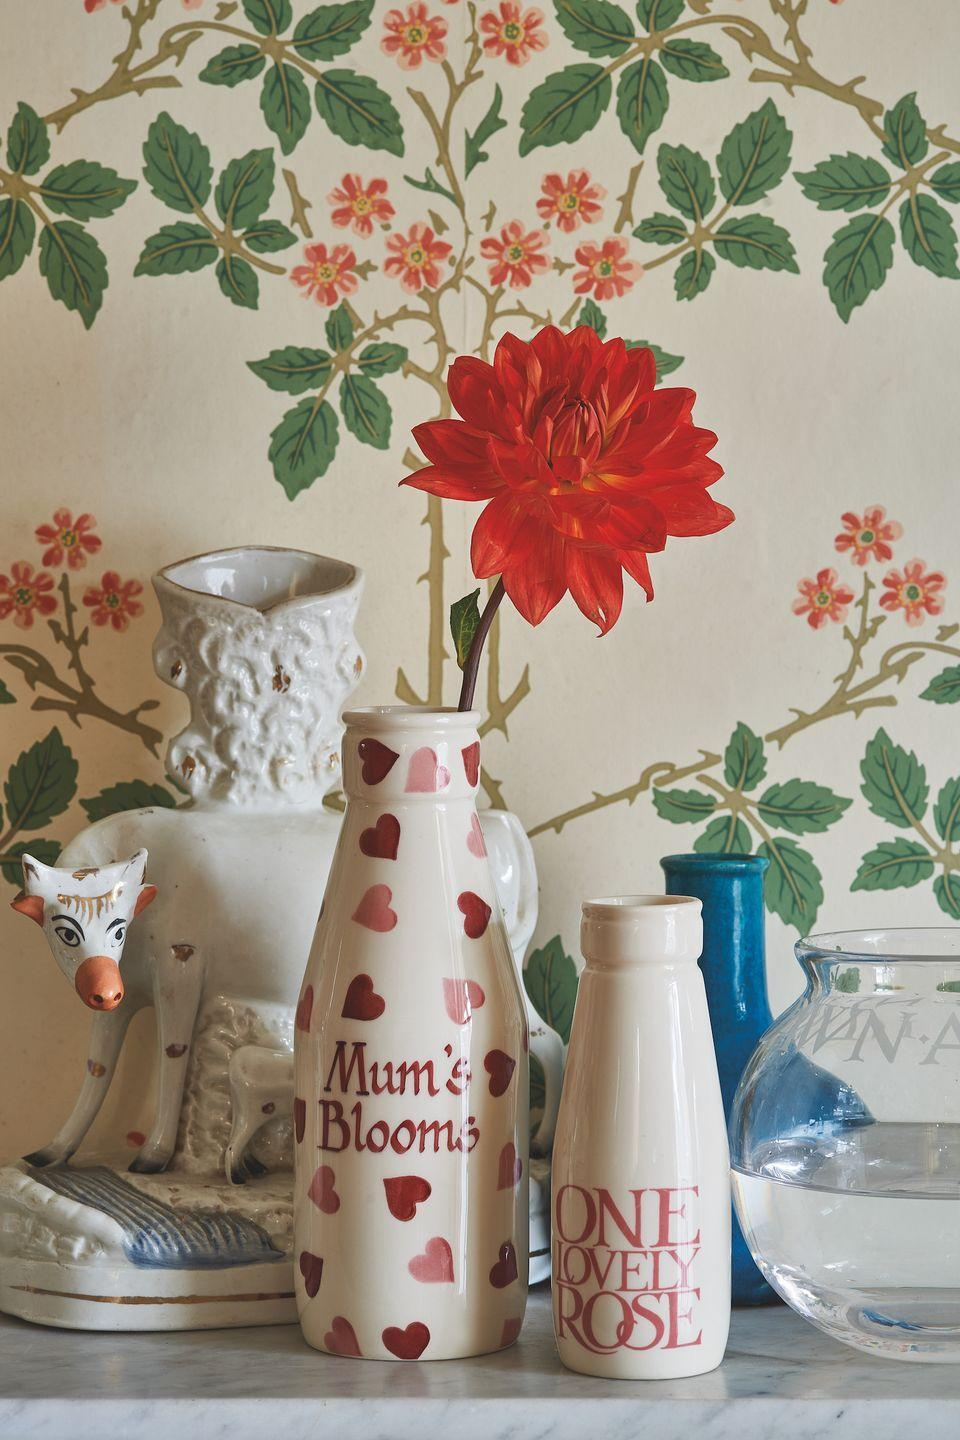 "<p>On the hunt for a Mother's Day must-have? We've got this beautiful 'Mum's Blooms' vase right at the top of our list...</p><p><a class=""link rapid-noclick-resp"" href=""https://go.redirectingat.com?id=127X1599956&url=https%3A%2F%2Fwww.emmabridgewater.co.uk%2Fcollections%2Fnew&sref=https%3A%2F%2Fwww.housebeautiful.com%2Fuk%2Flifestyle%2Fshopping%2Fg35264783%2Femma-bridgewater-spring%2F"" rel=""nofollow noopener"" target=""_blank"" data-ylk=""slk:BUY NOW"">BUY NOW</a></p>"